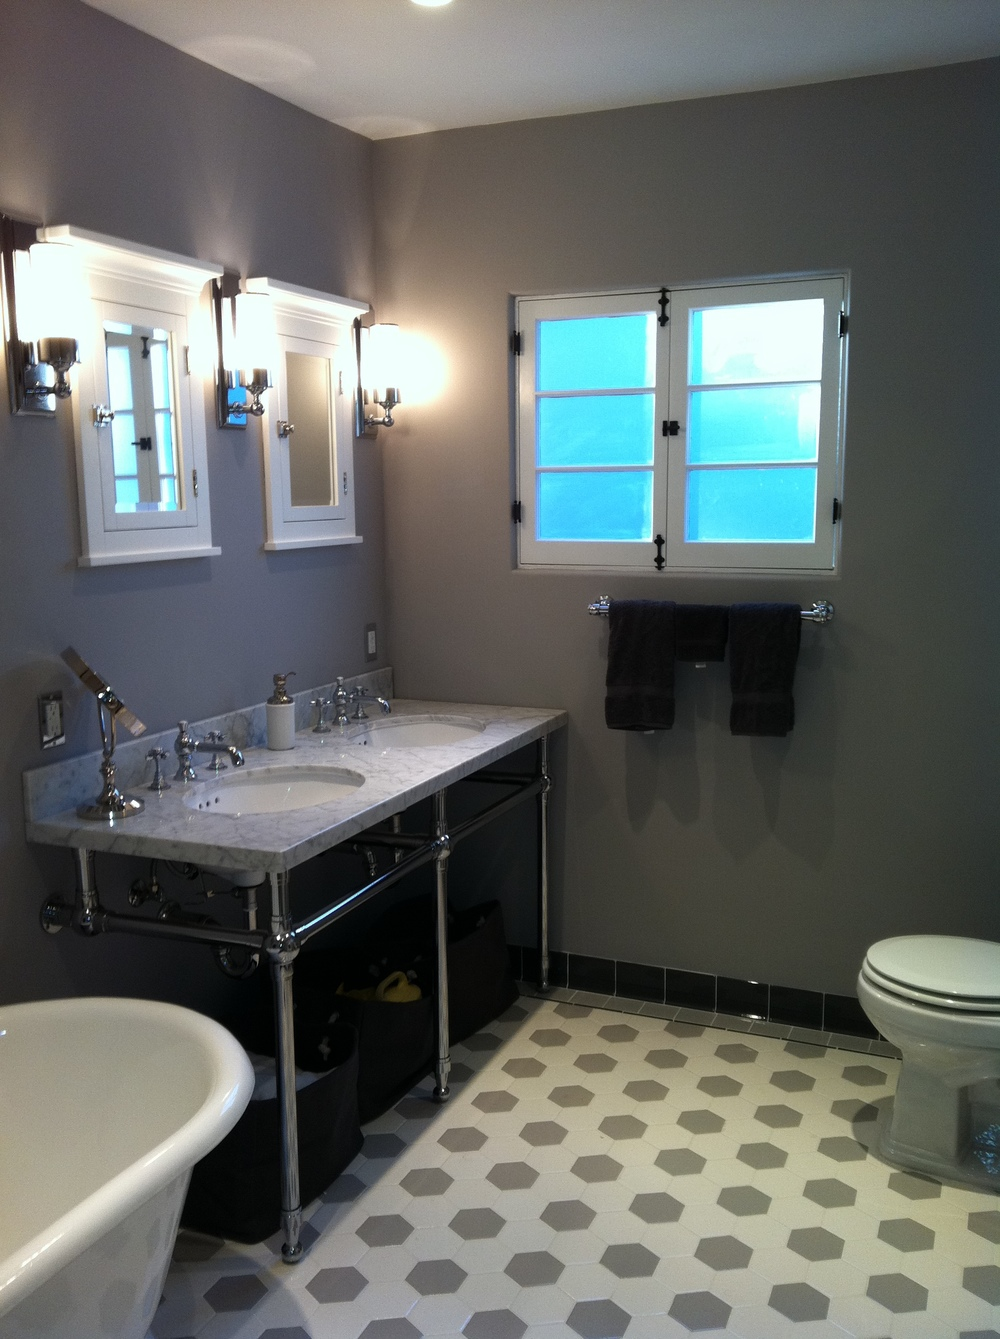 1927 bathroom re-created with period materials and reproduction tile and fixtures.